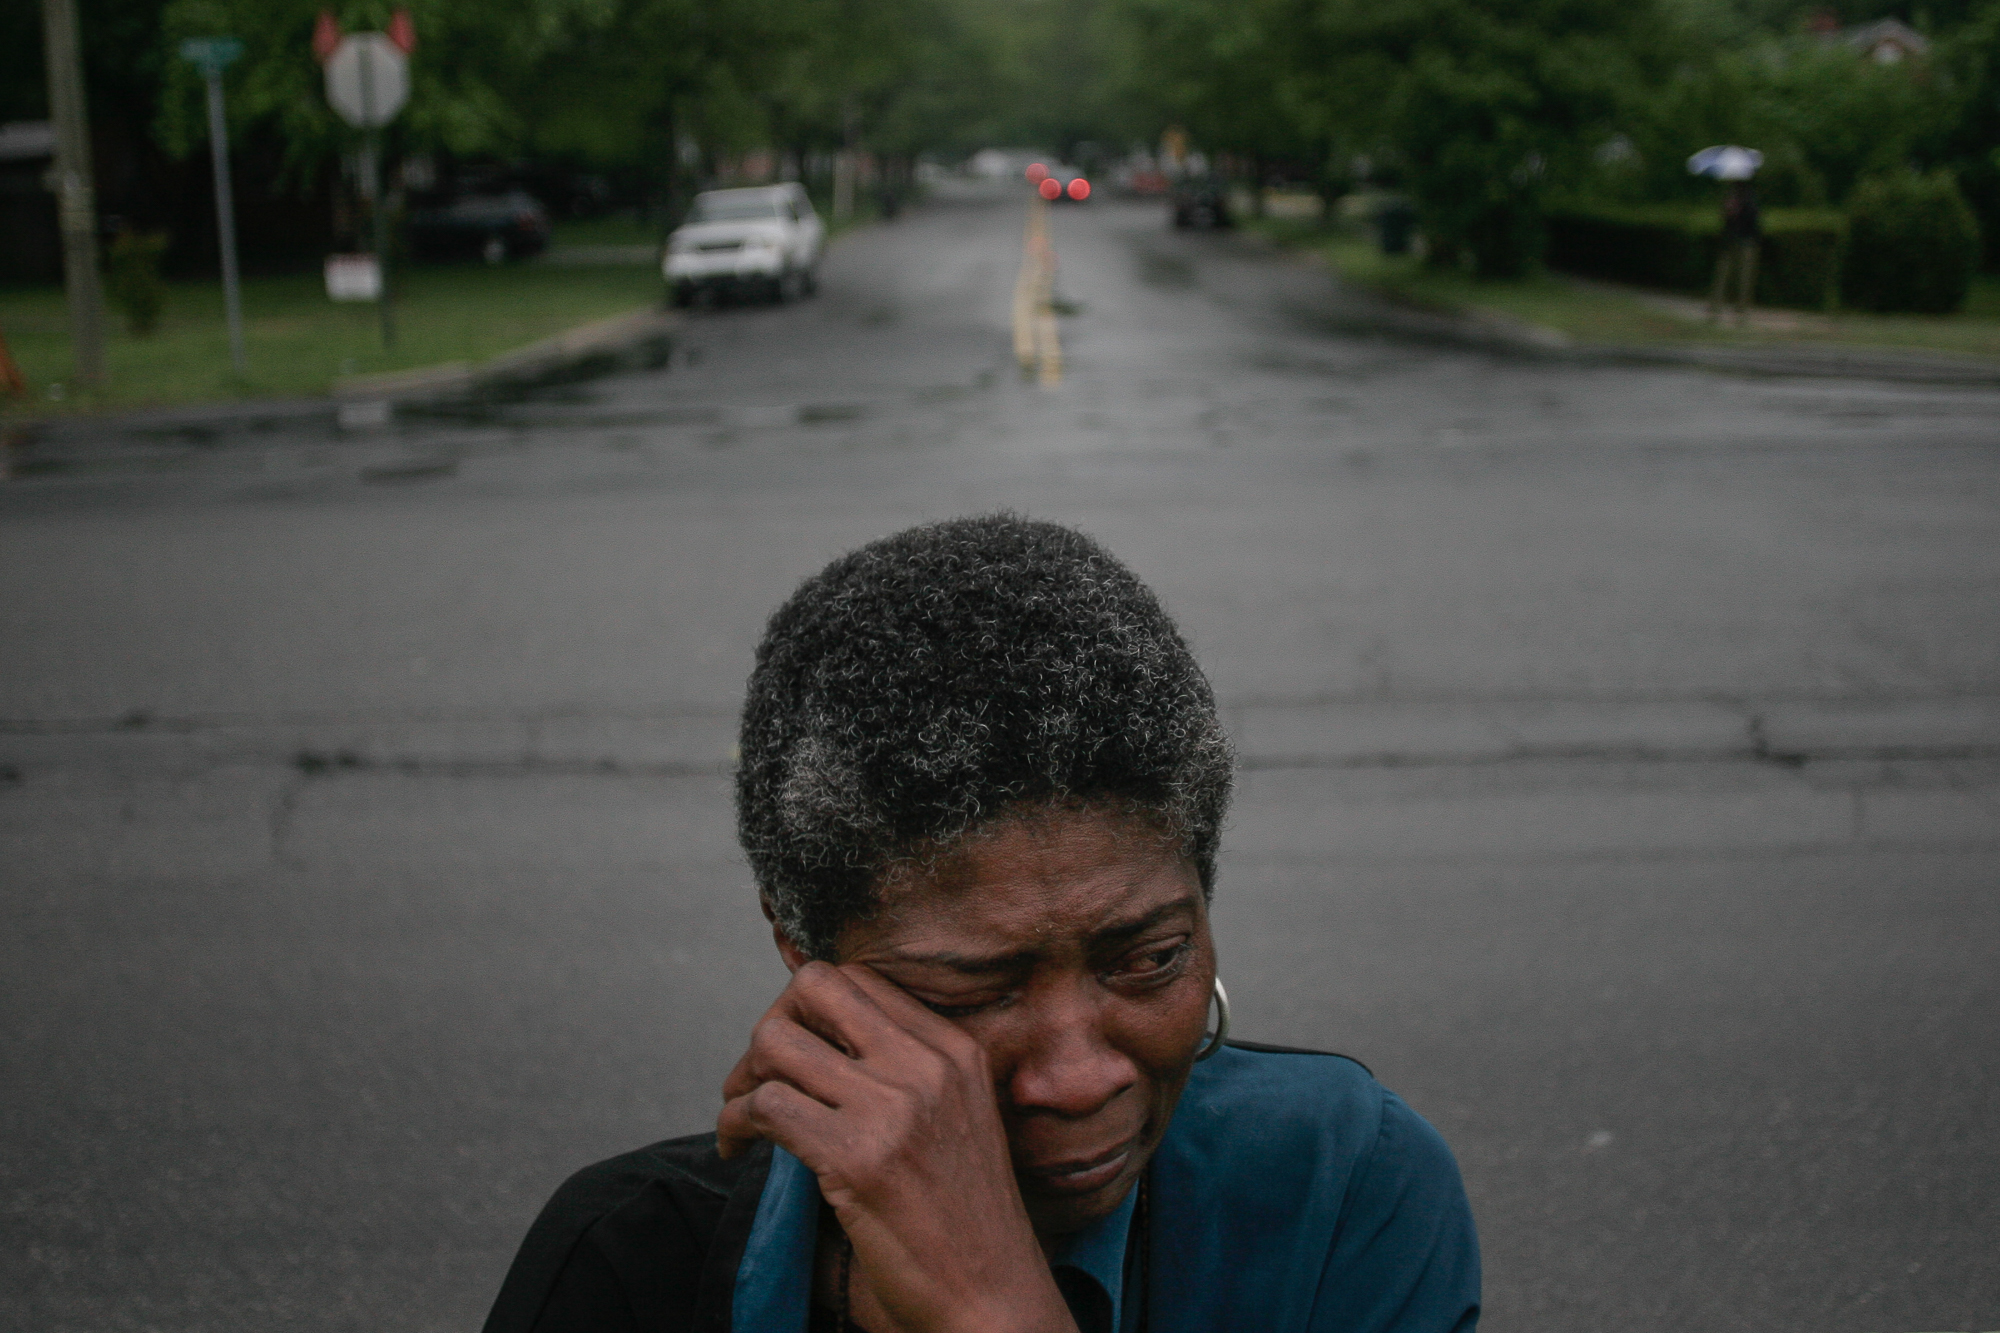 """""""Since Ray been murdered, I have nightmares. I dream of him in the morgue and when they are cutting his body I wake up because I can feel the knife cutting me,"""" says Joslin Simms, who weeps at the corner of Broad and Leon streets where her son, Rayburn, 30, was shot to death on May 21, 2005. The case remains unsolved. Ray left behind four children and a devastated mother. A decade later, Joslin limps along maimed by grief and depression. She calls it a """"walking death."""""""